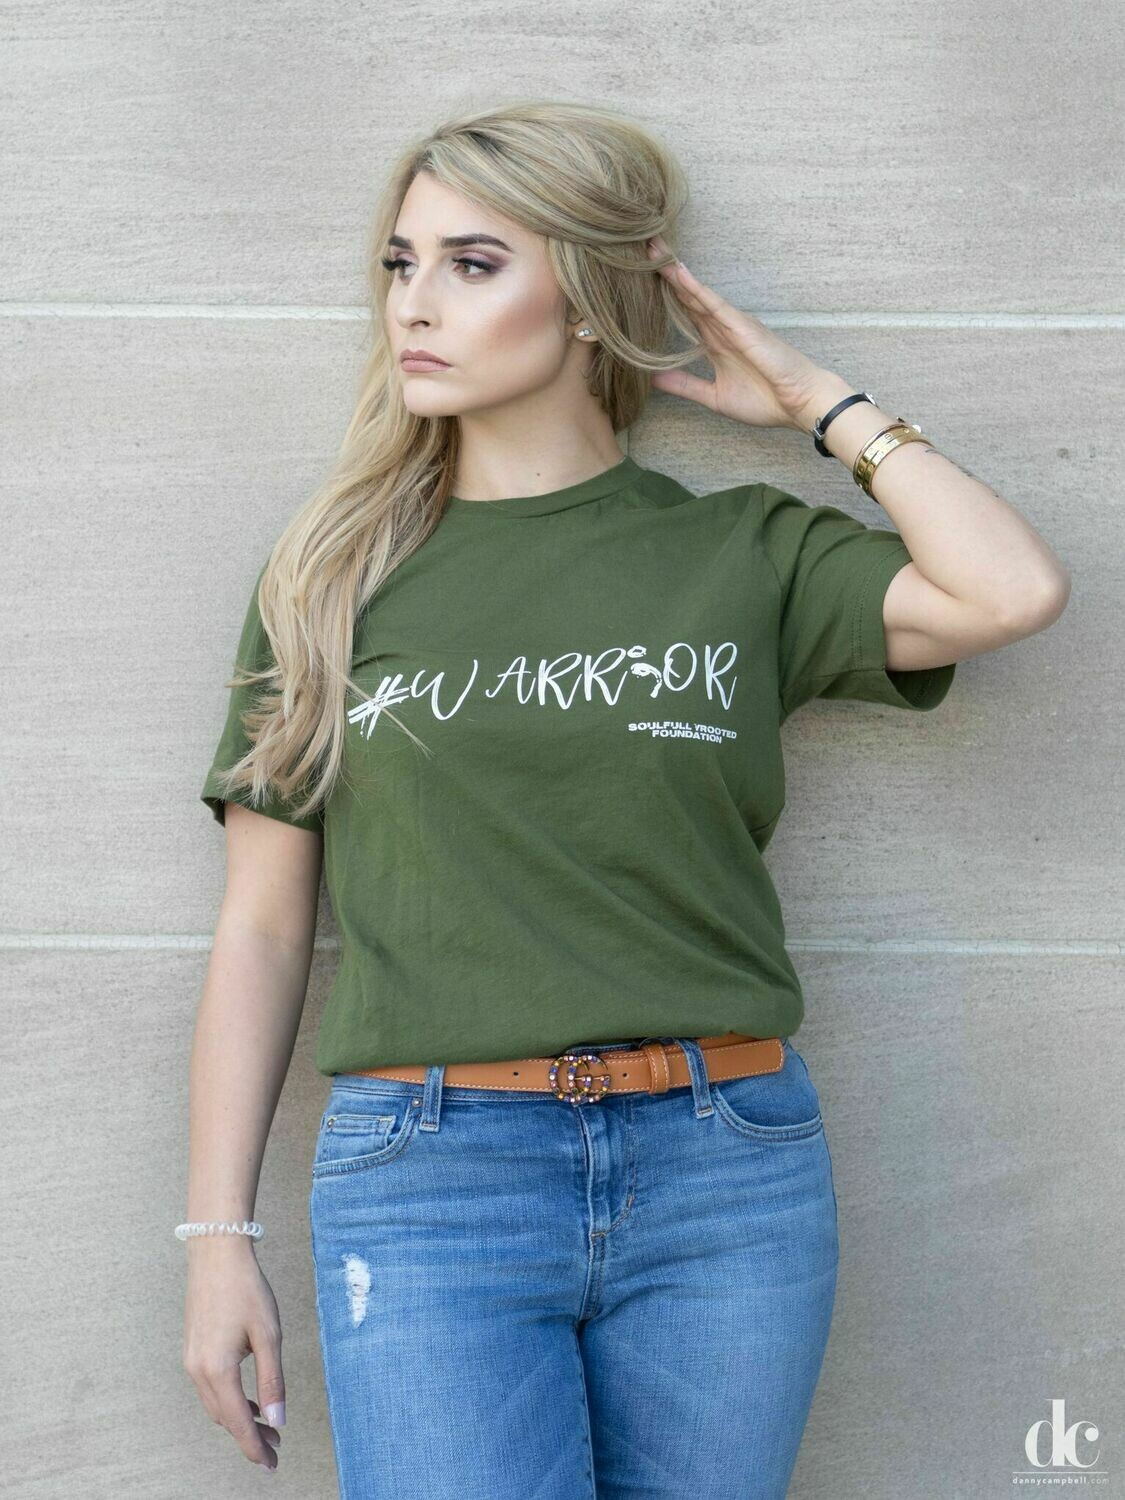 Grace Warr;or Movement Tee